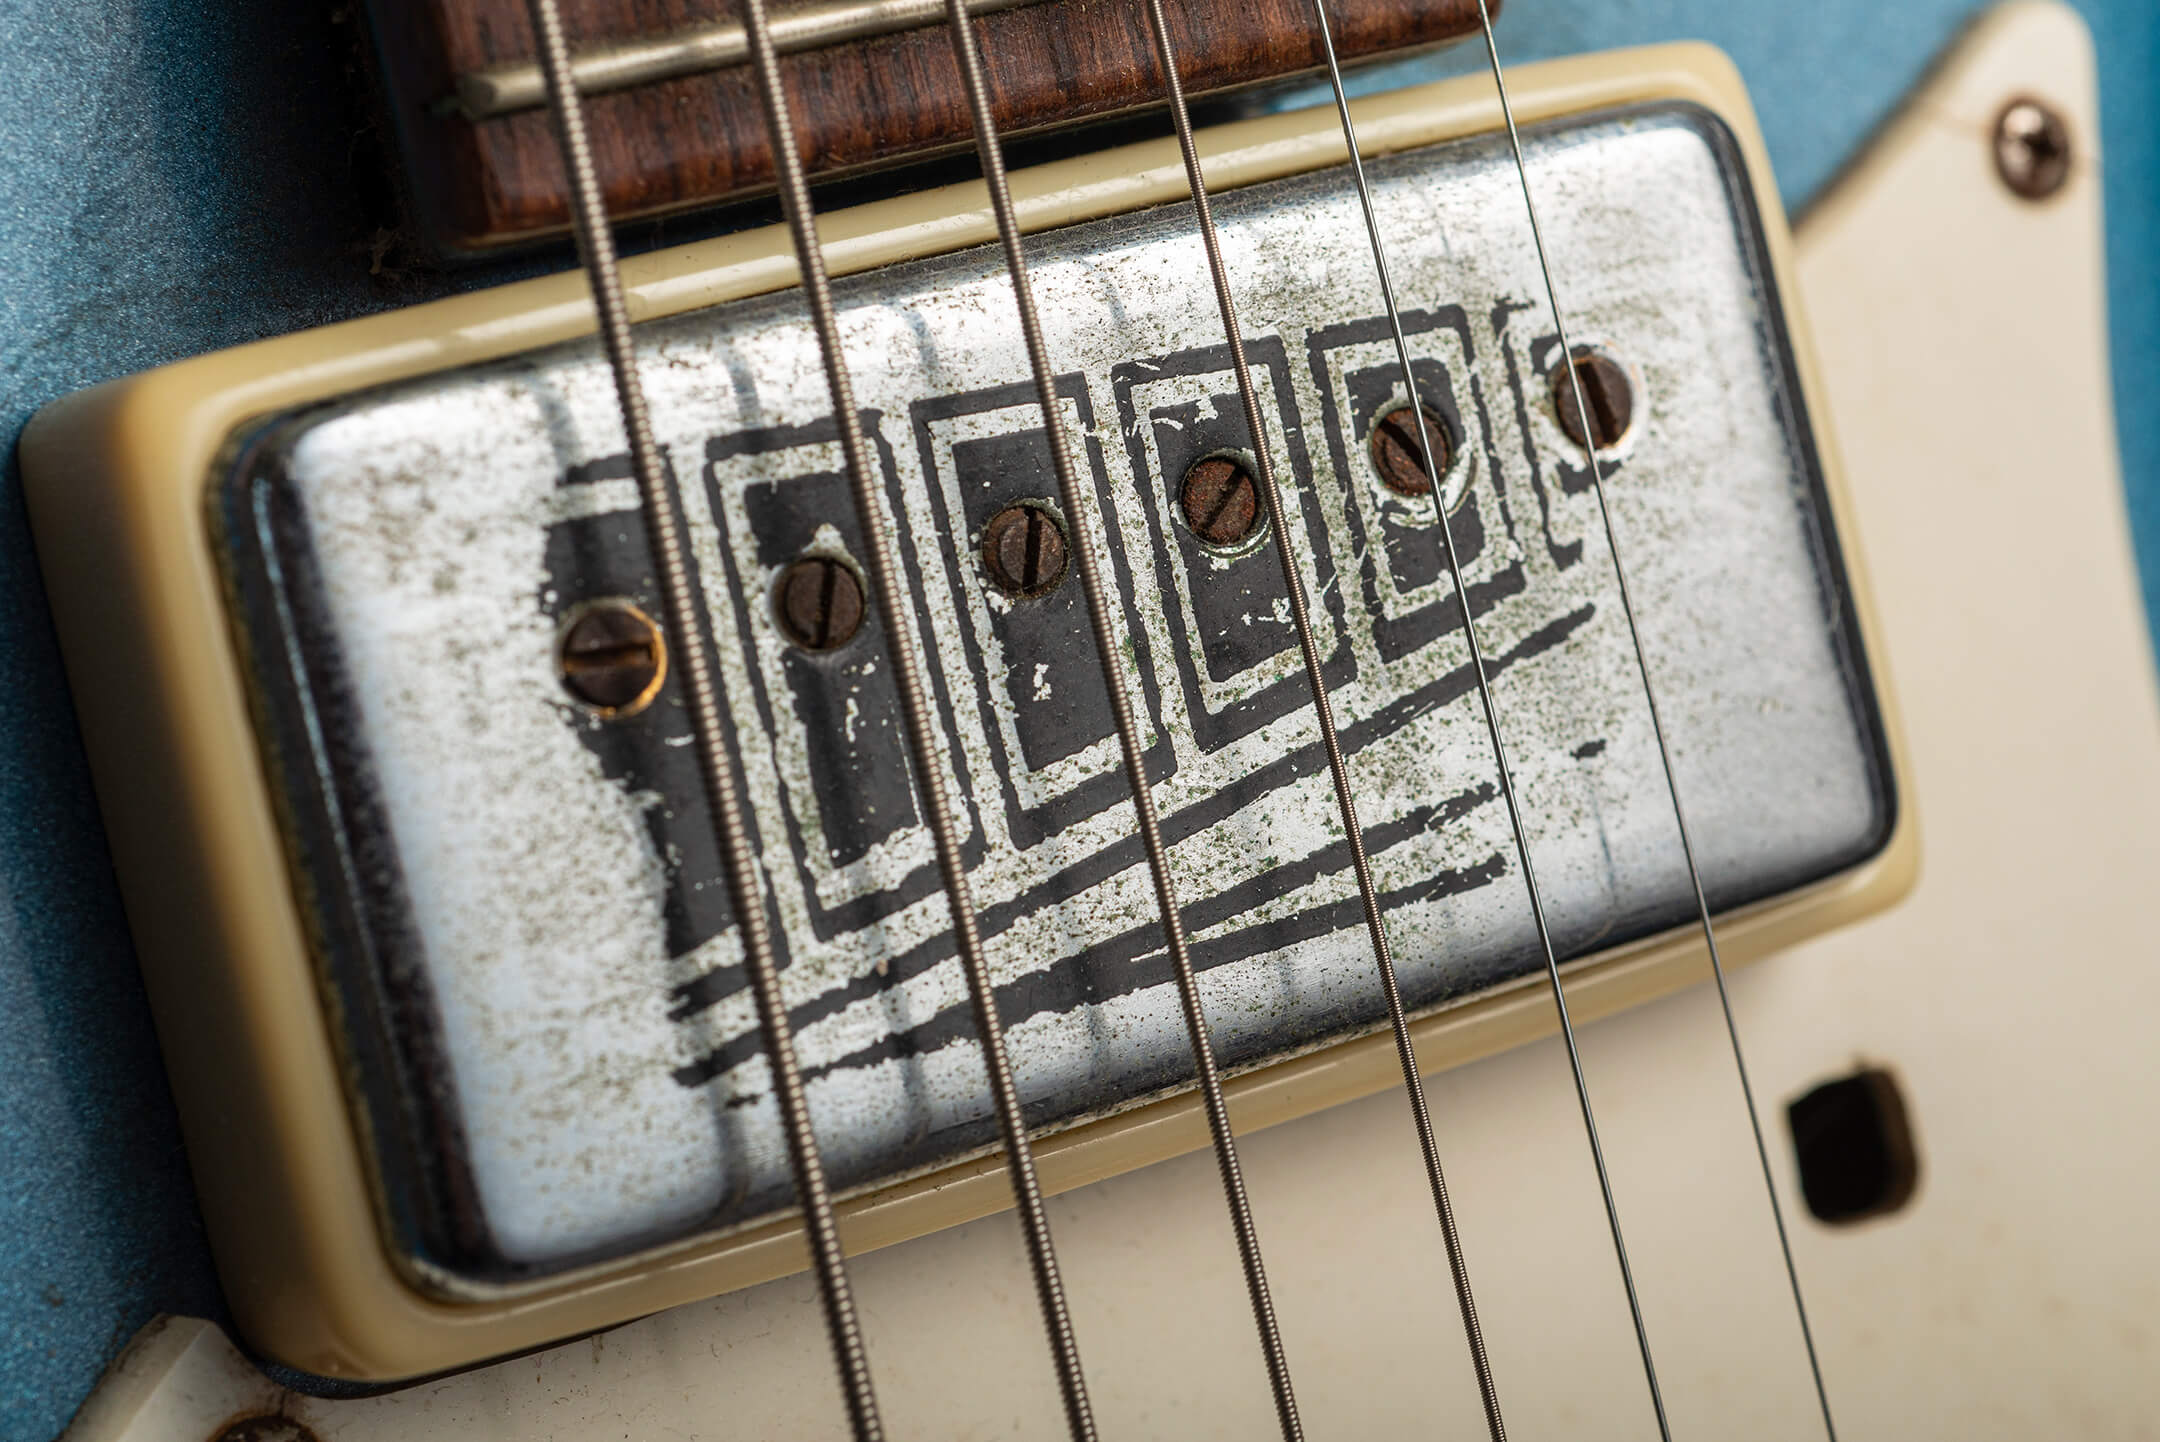 Marc Ransley's Supro Airline